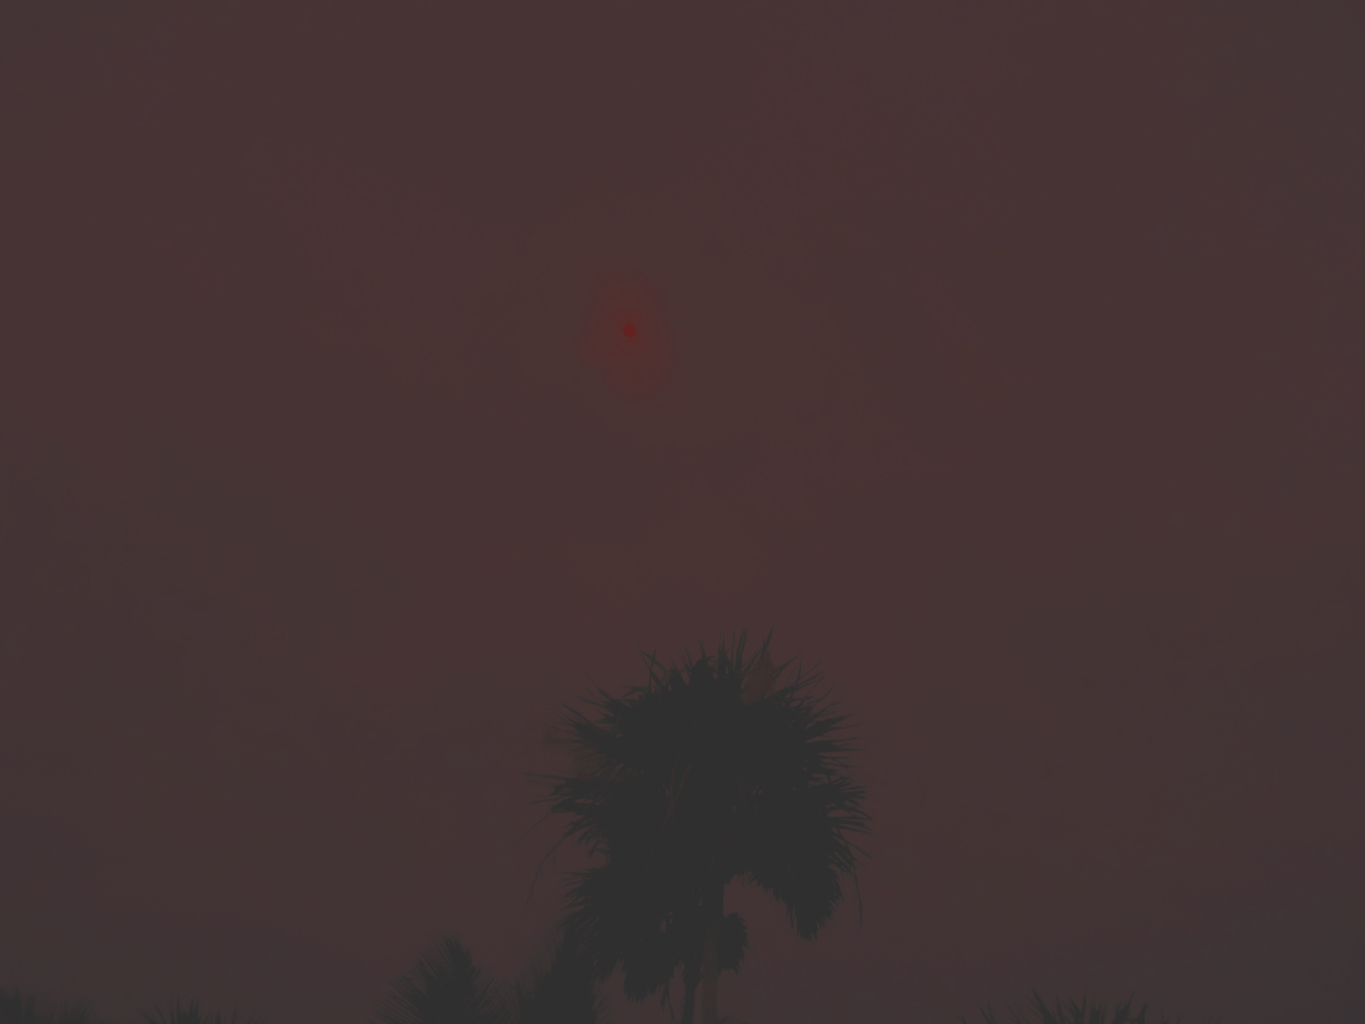 Red moon (blood moon), 2014